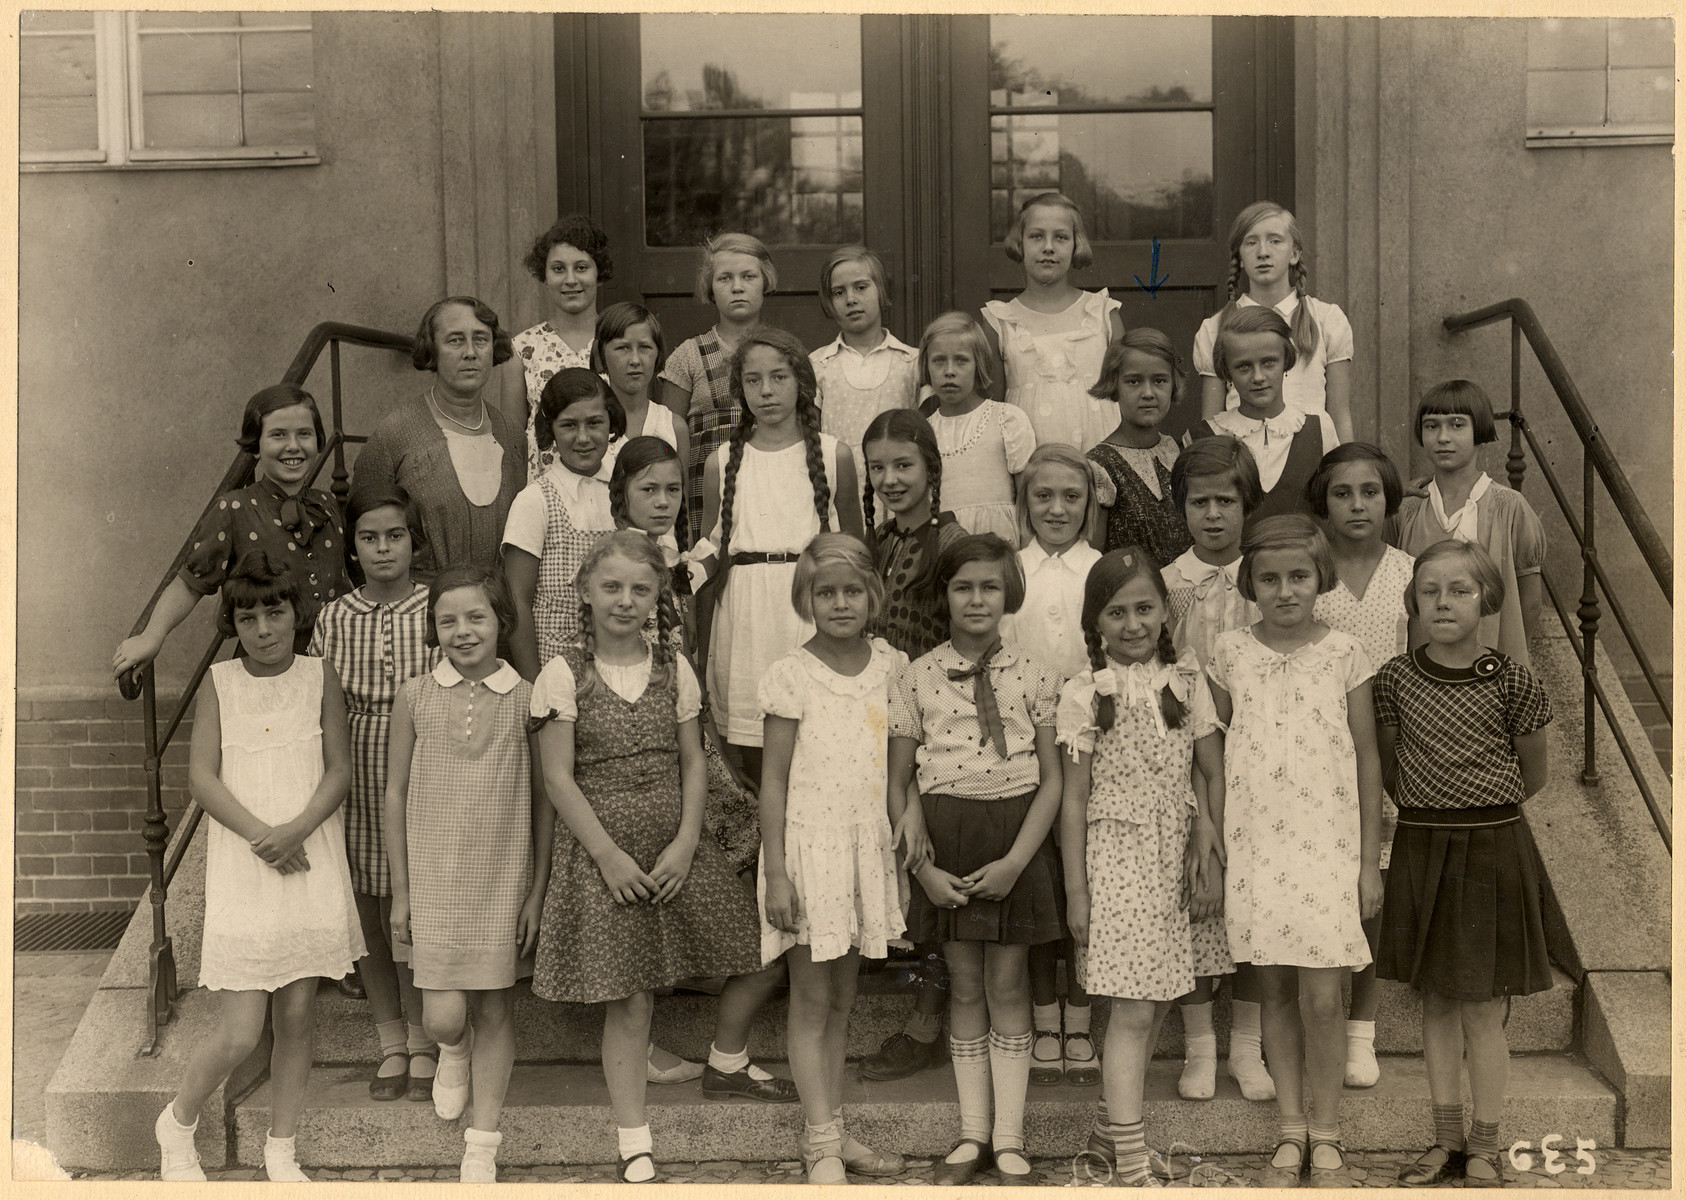 Group portrait of girls in a predominantly German school.  The Jewish students were expelled a few years later.  Among those pictured is Leonora Priwin (sister of the conductor Andre Previn) first row, second from the left; Inge Jaeger a Jewish mischlinge who identified as a Jew, standing second row from the top, second from the left; Marion Sauerbrunn, the donor, to the right of the teacher in the second row.